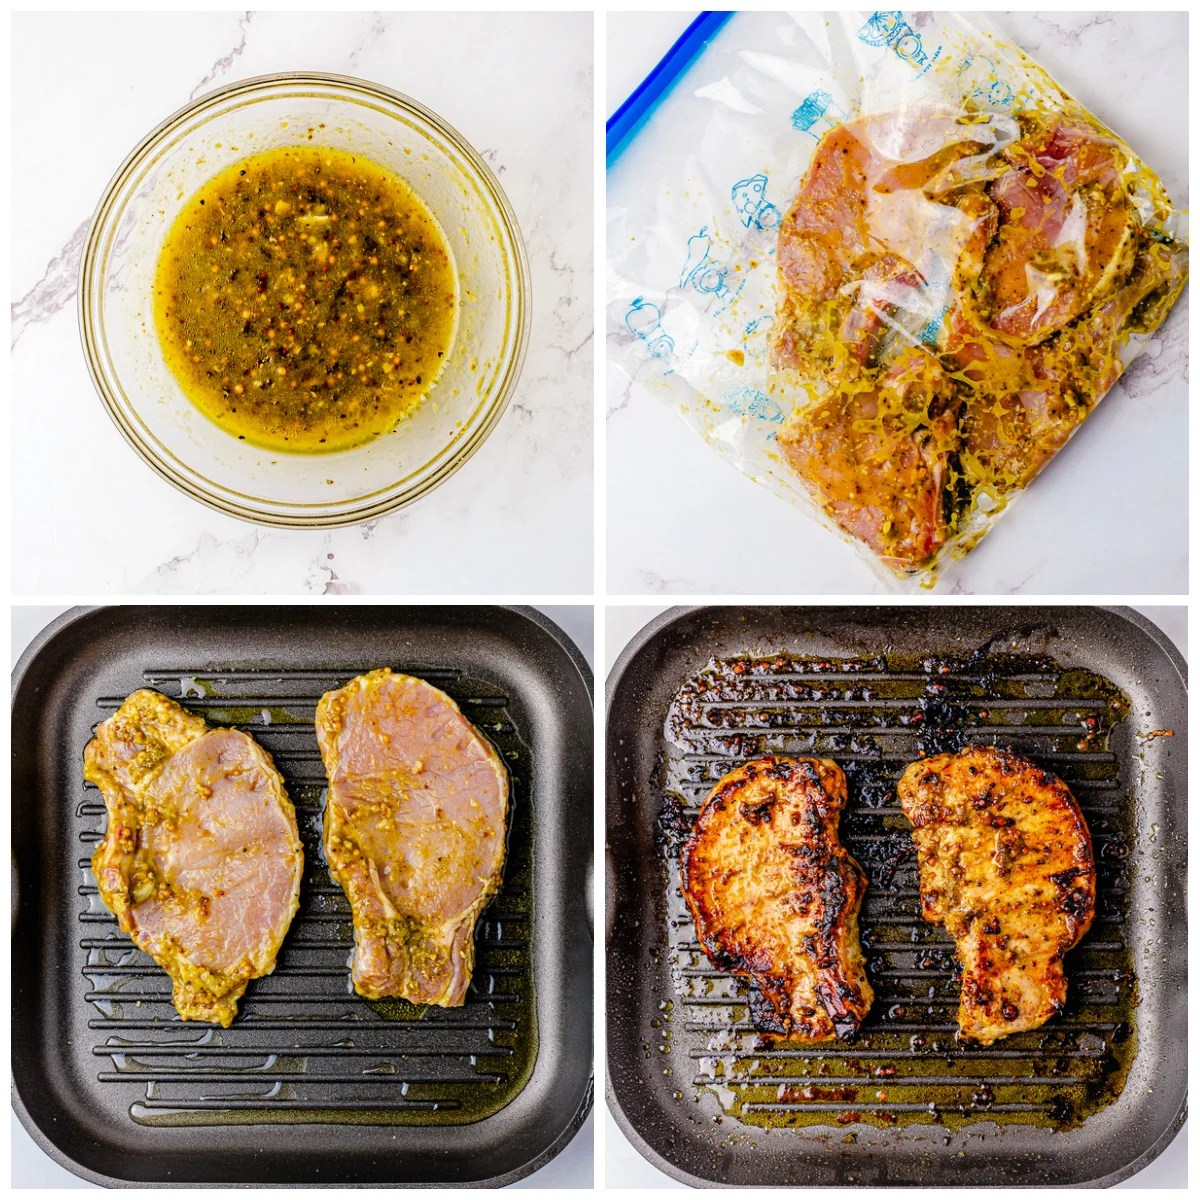 Step by step photos on how to make a Grilled Pork Chop Recipe